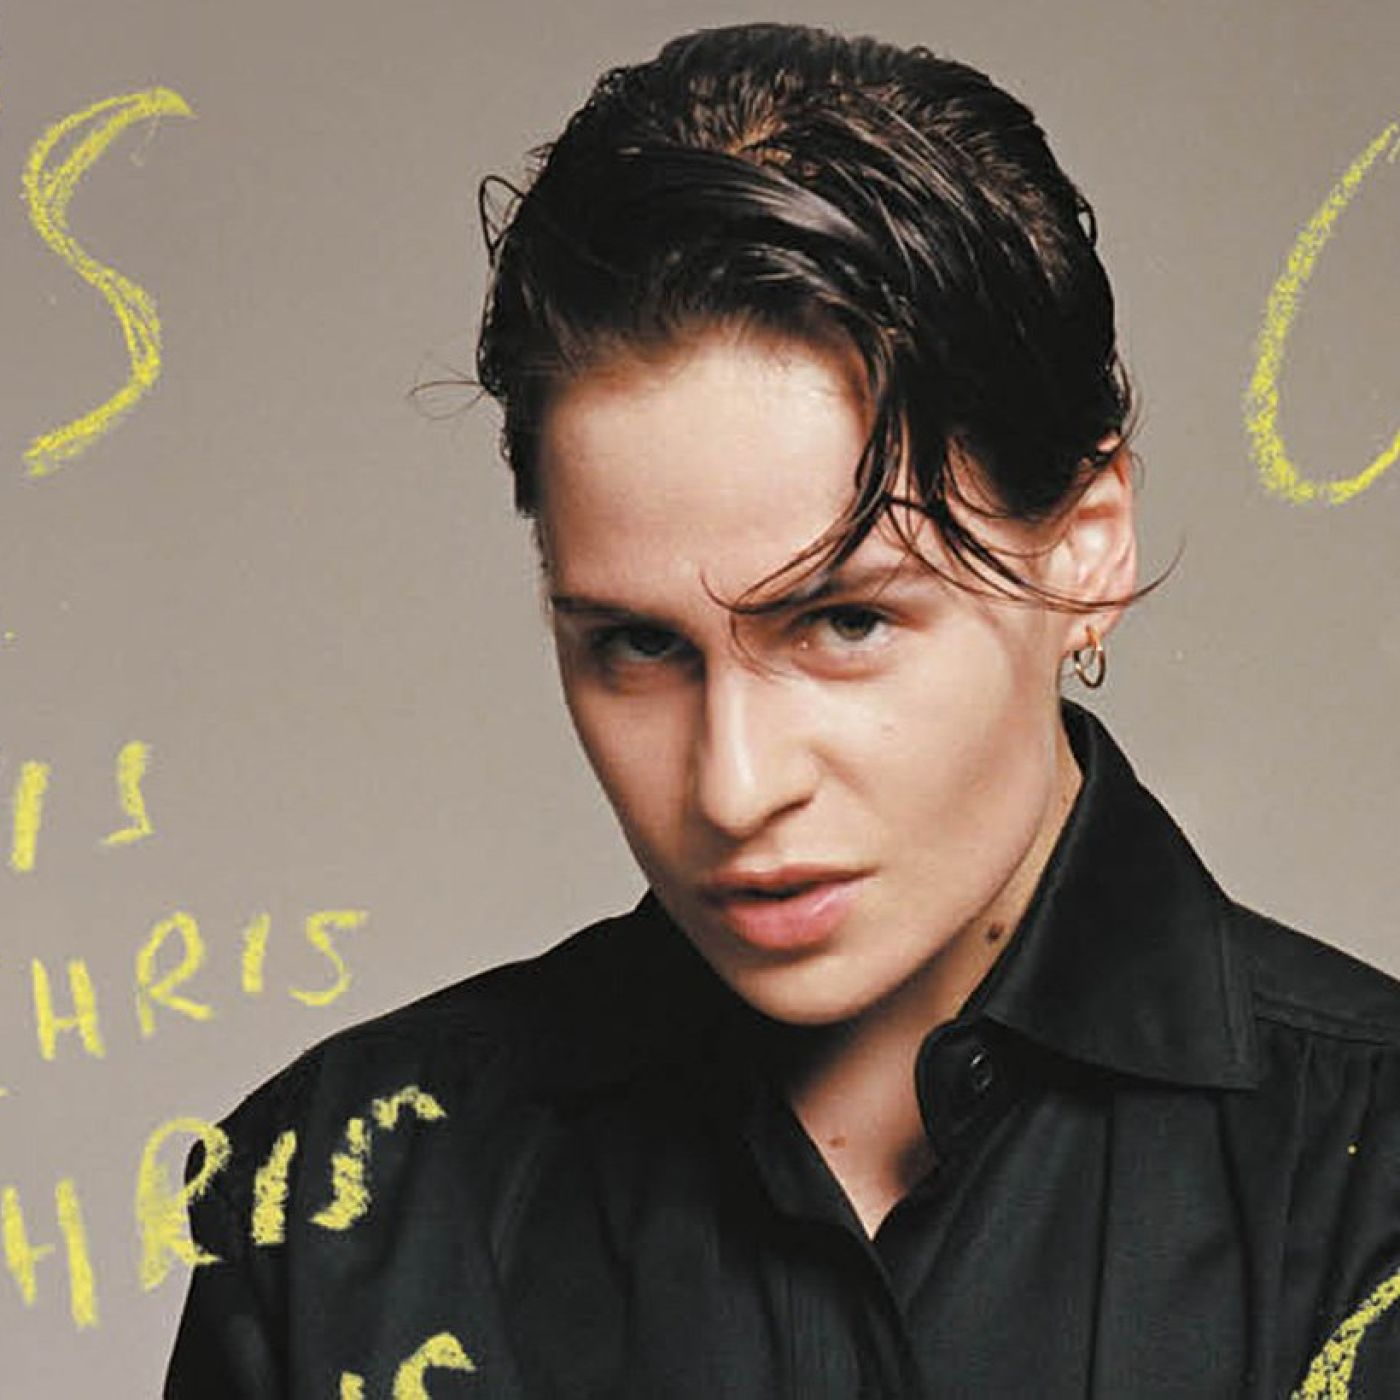 #11- Christine and The Queens - Chris